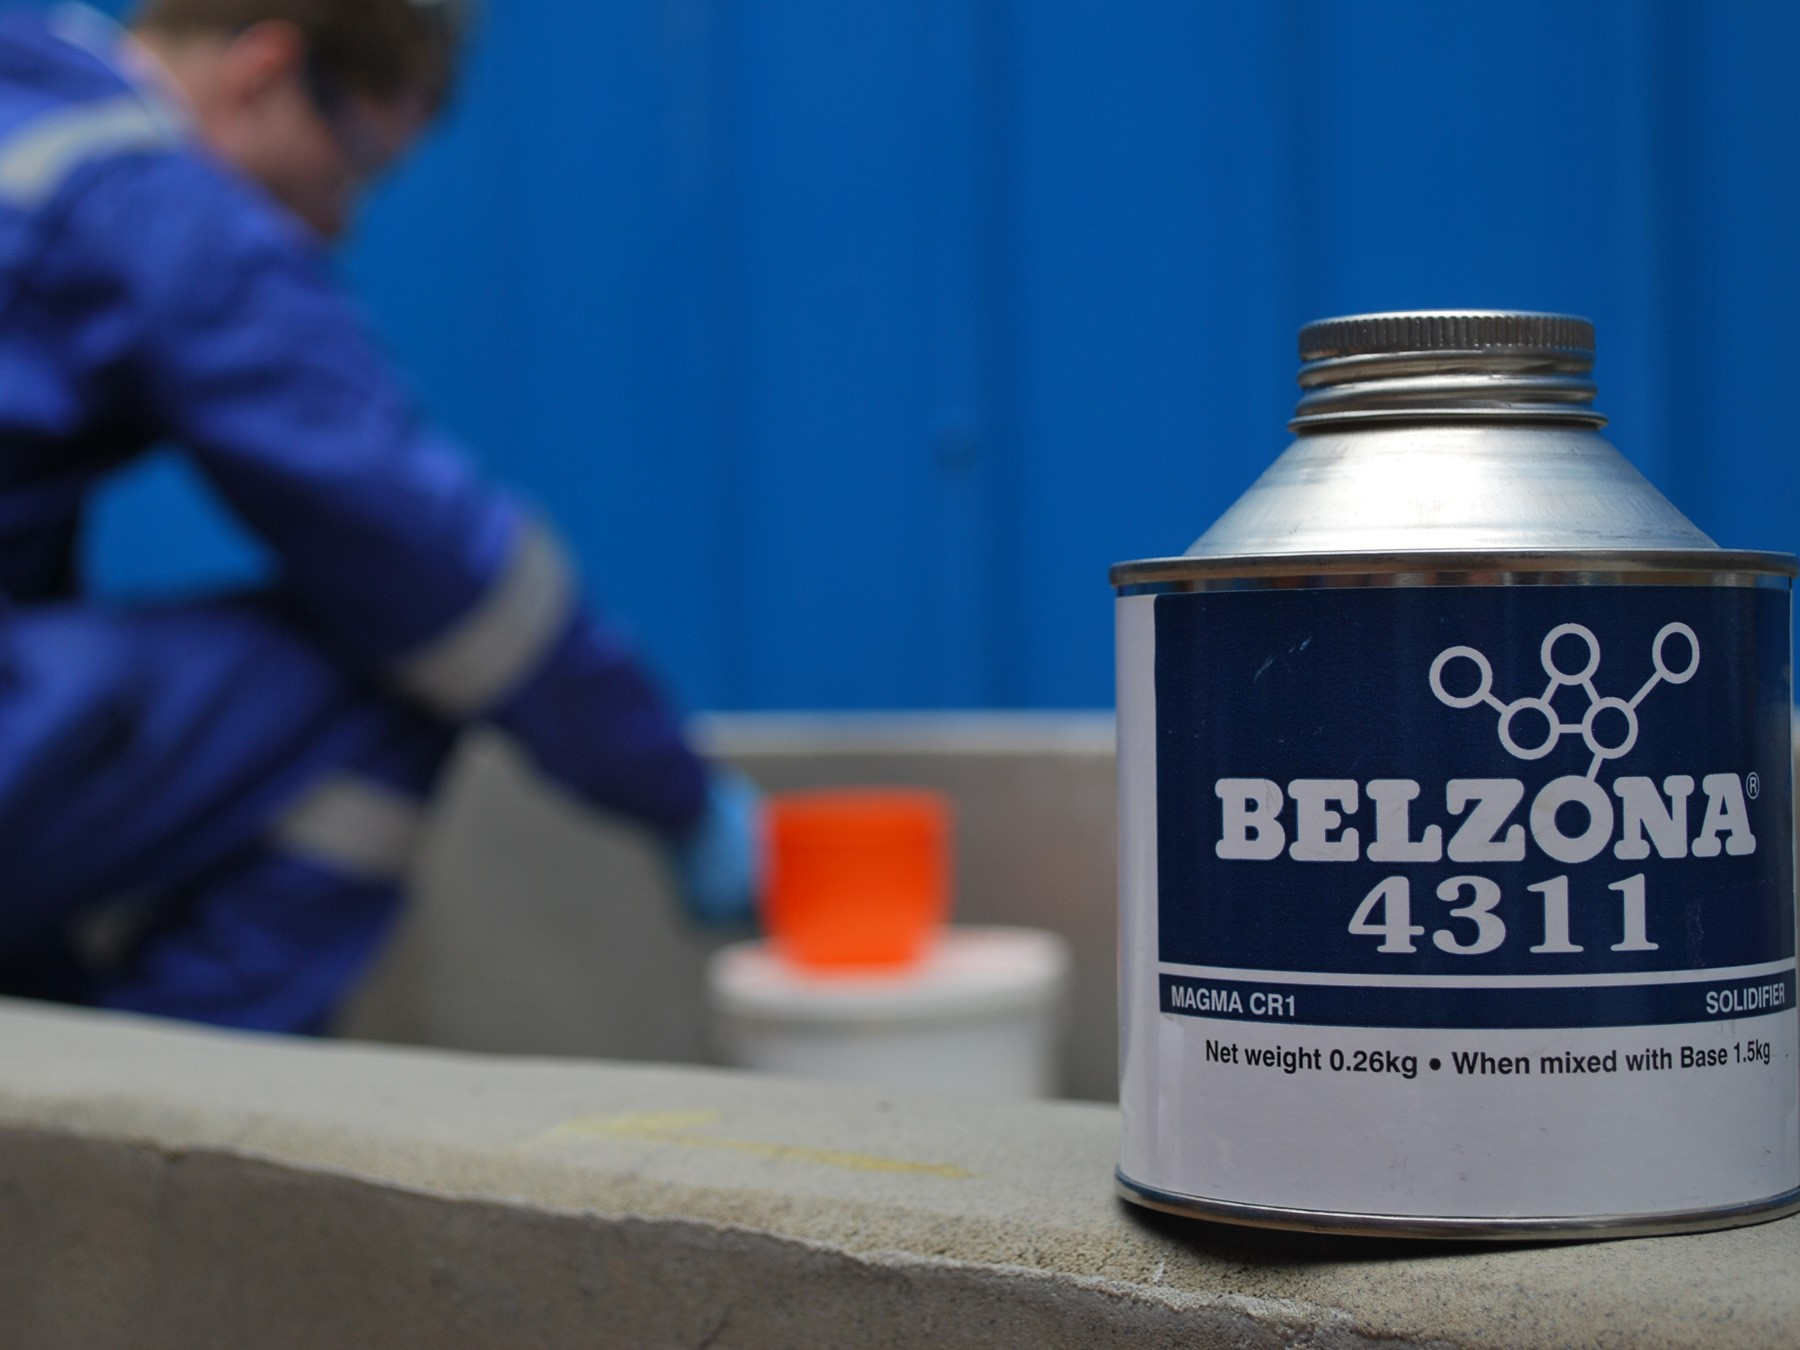 INTRODUCING A REFORMULATED CHEMICAL RESISTANT COATING - BELZONA 4311